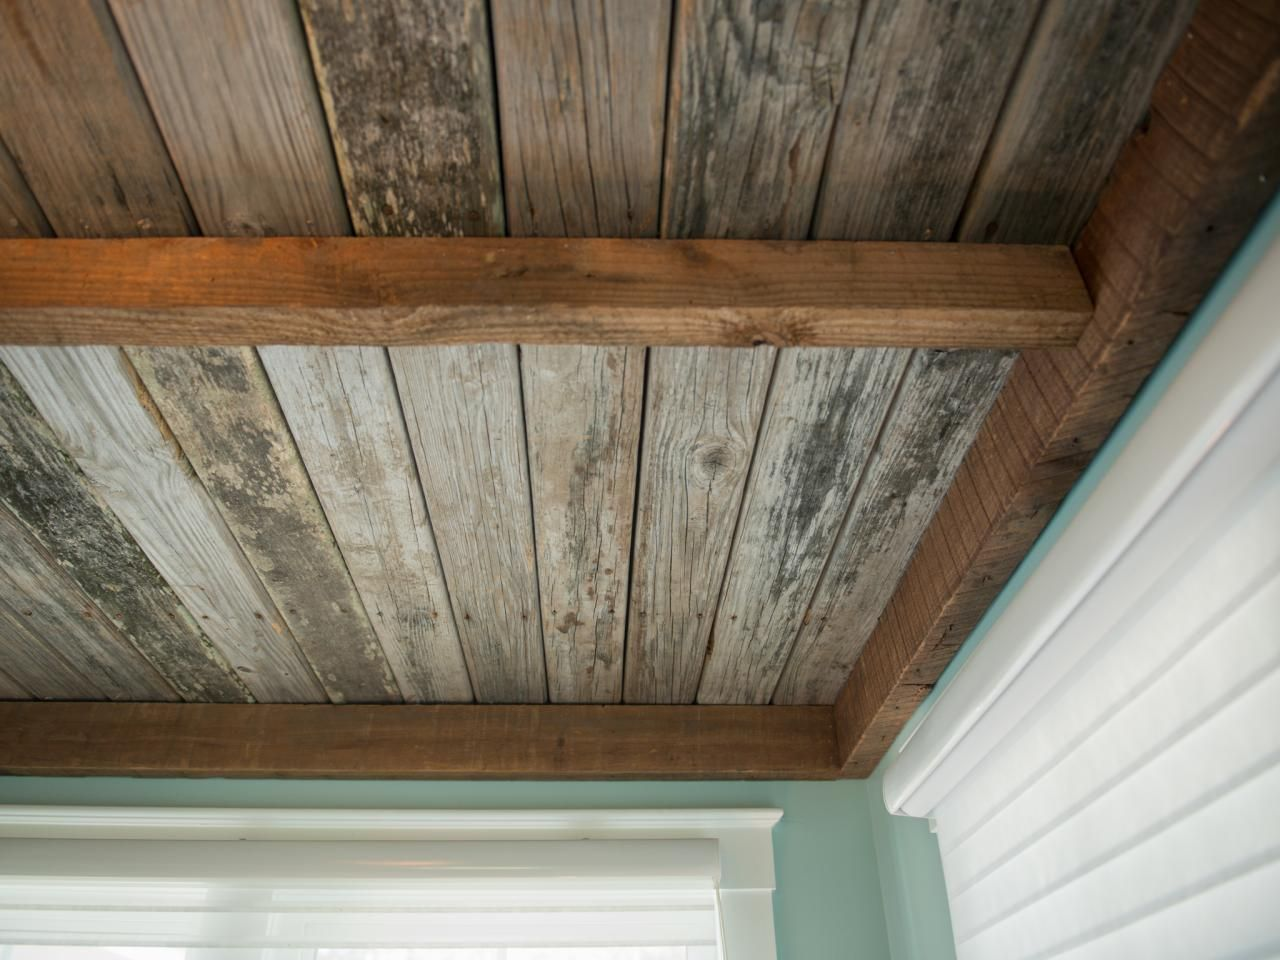 The ceiling is clad in distressed wood from the old dock